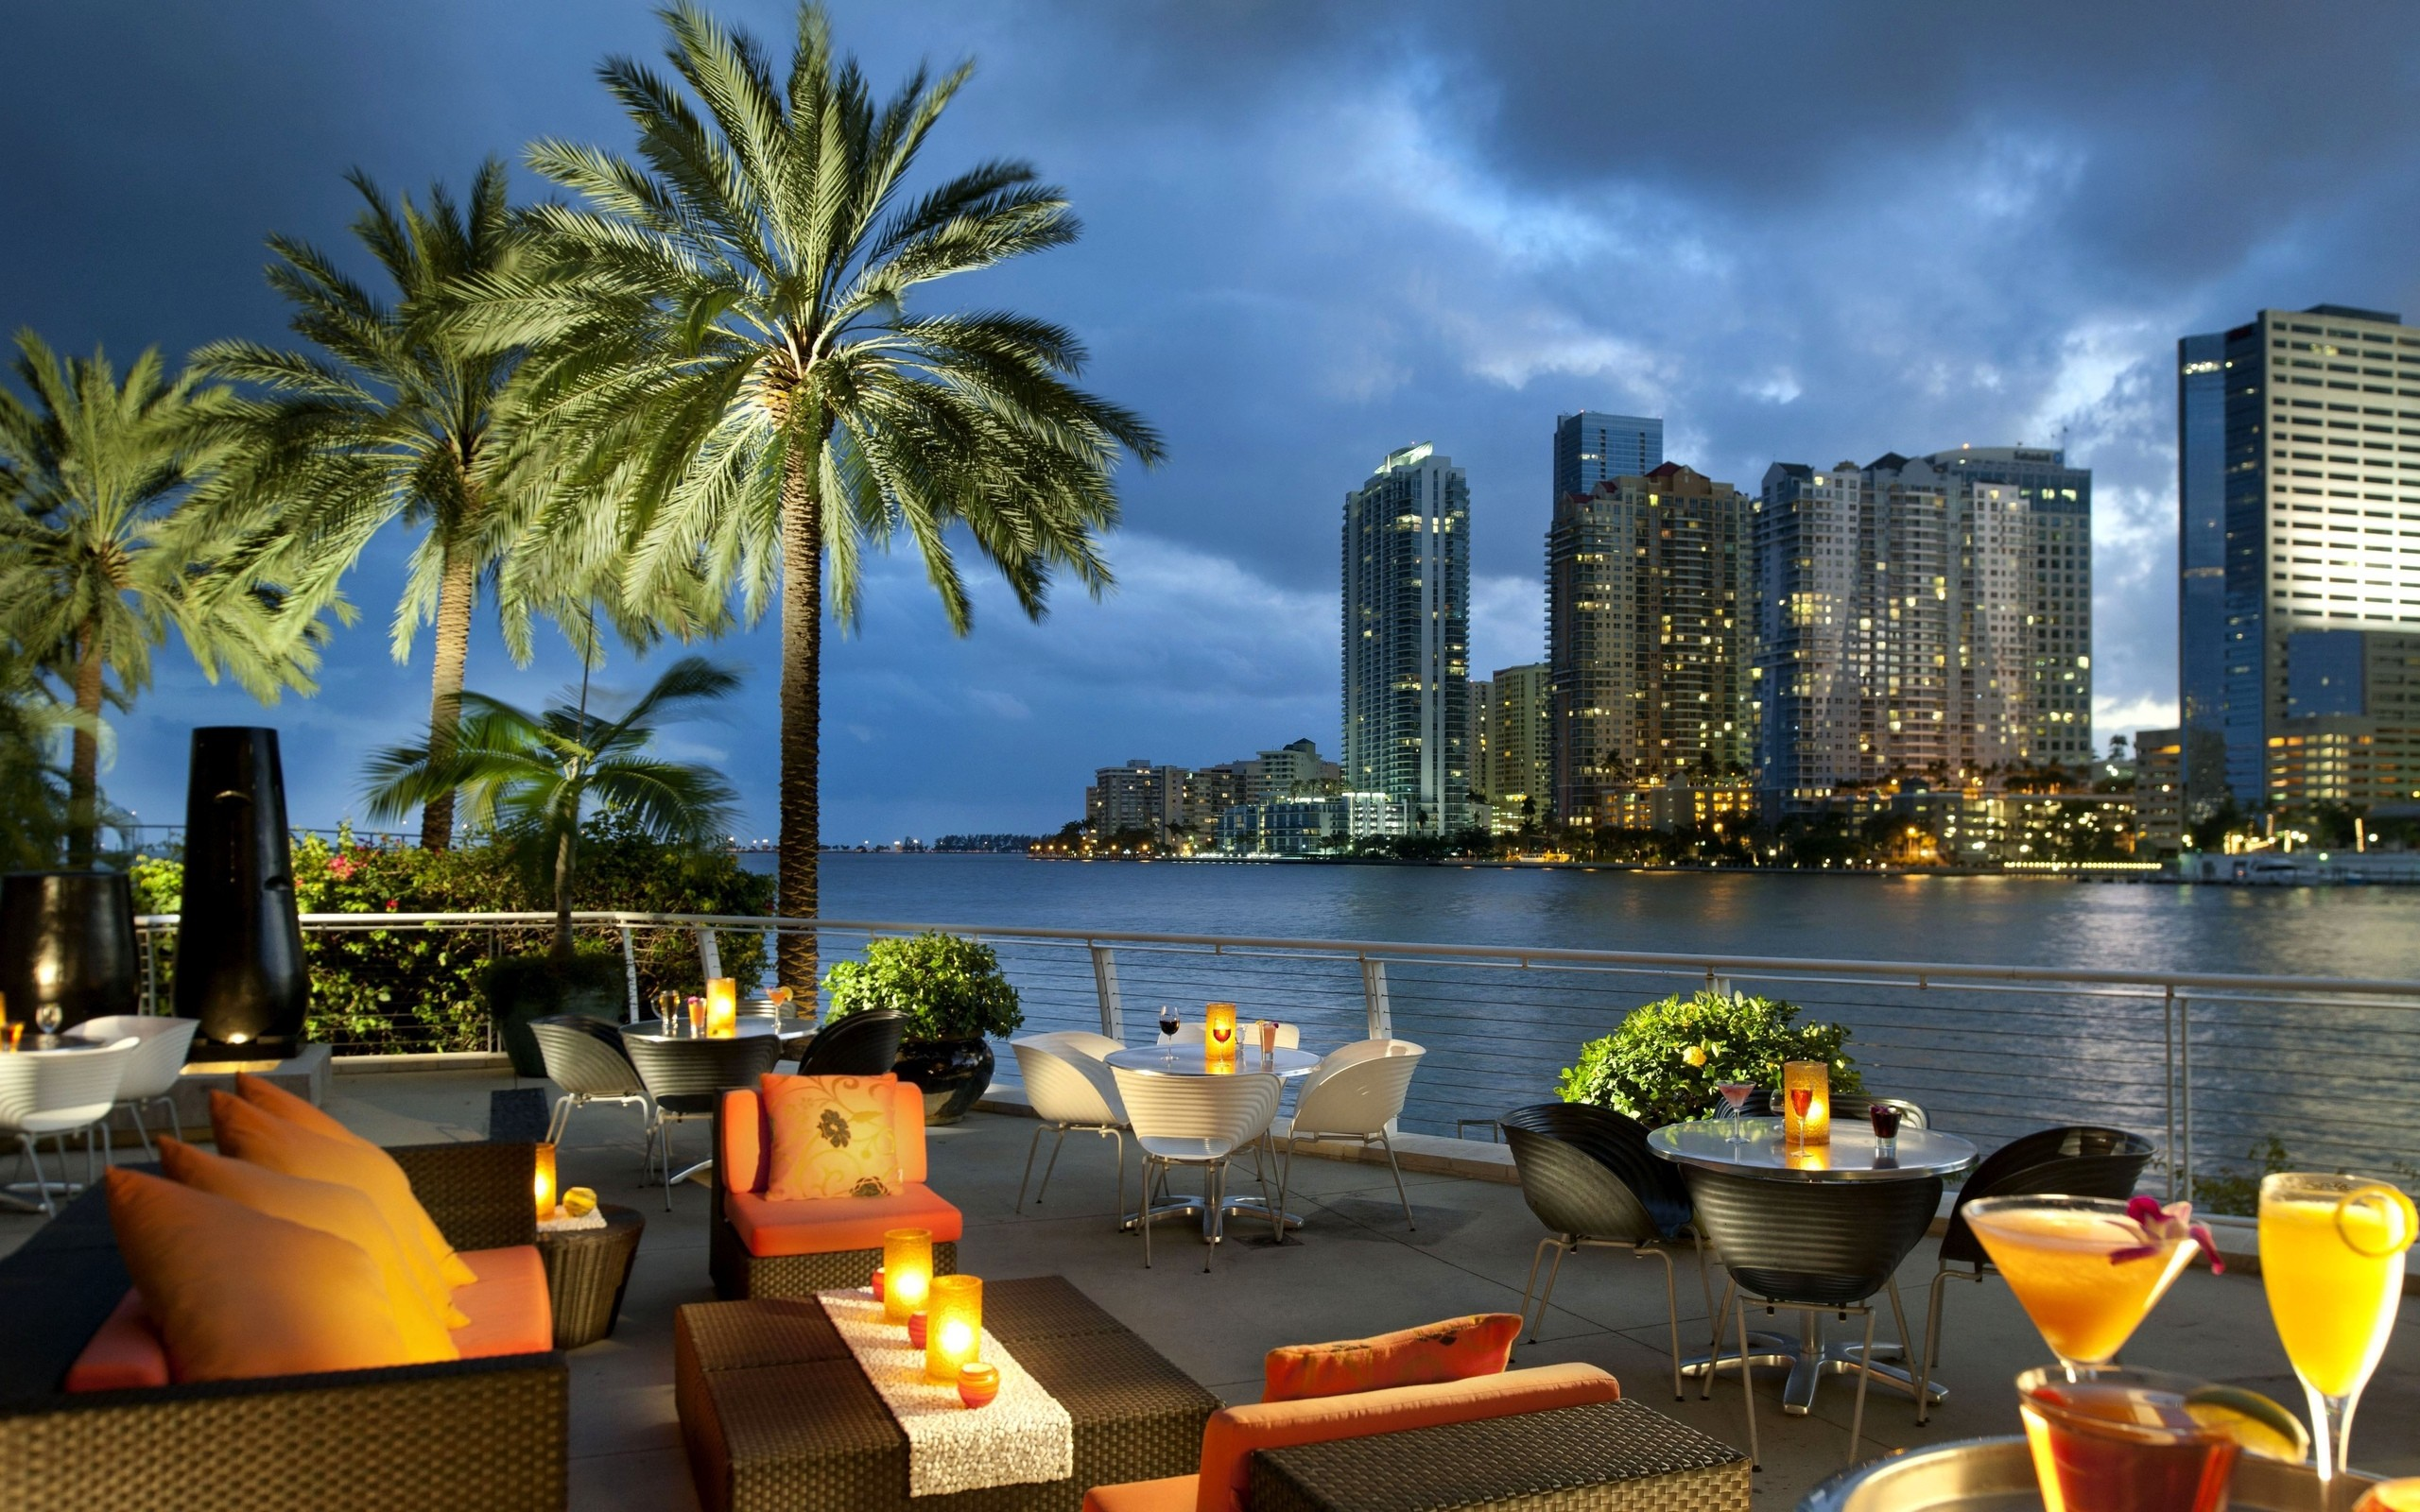 Wallpapers Miami Patio Myspace Backgrounds Miami Patio Backgrounds 2560x1600